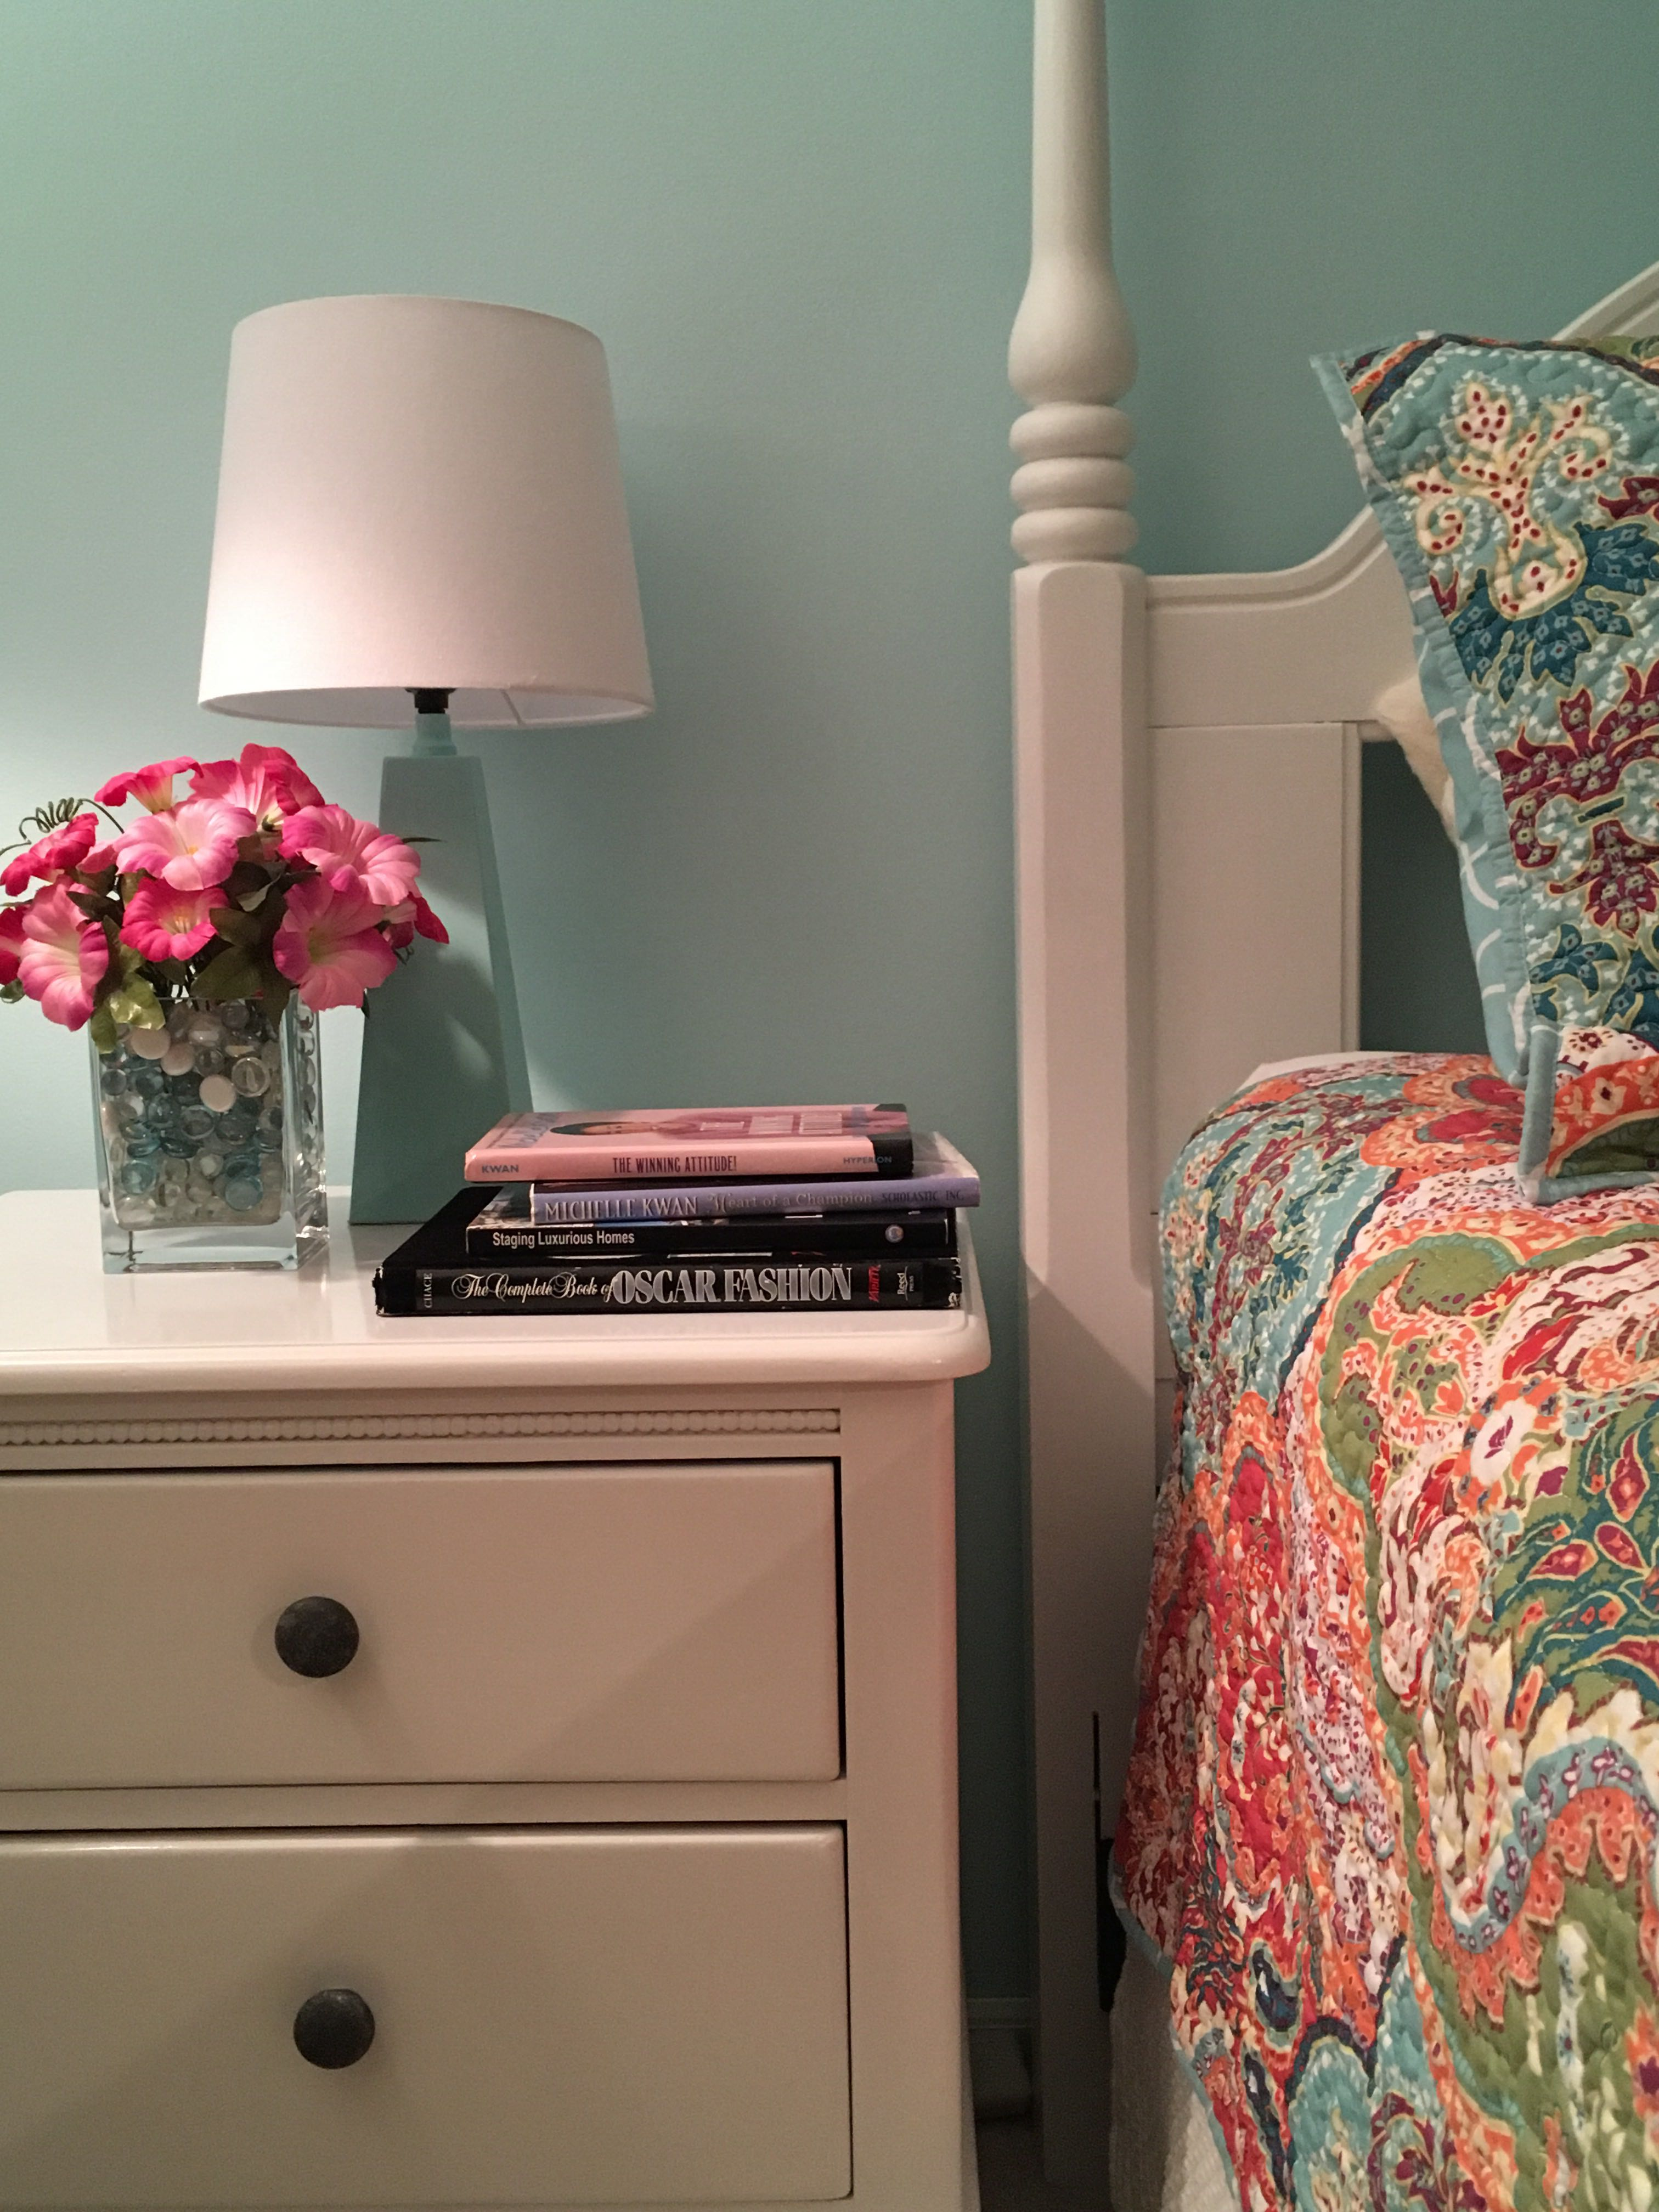 Showcasing a bedroom redesign with new furniture, paint, and indoor décor.